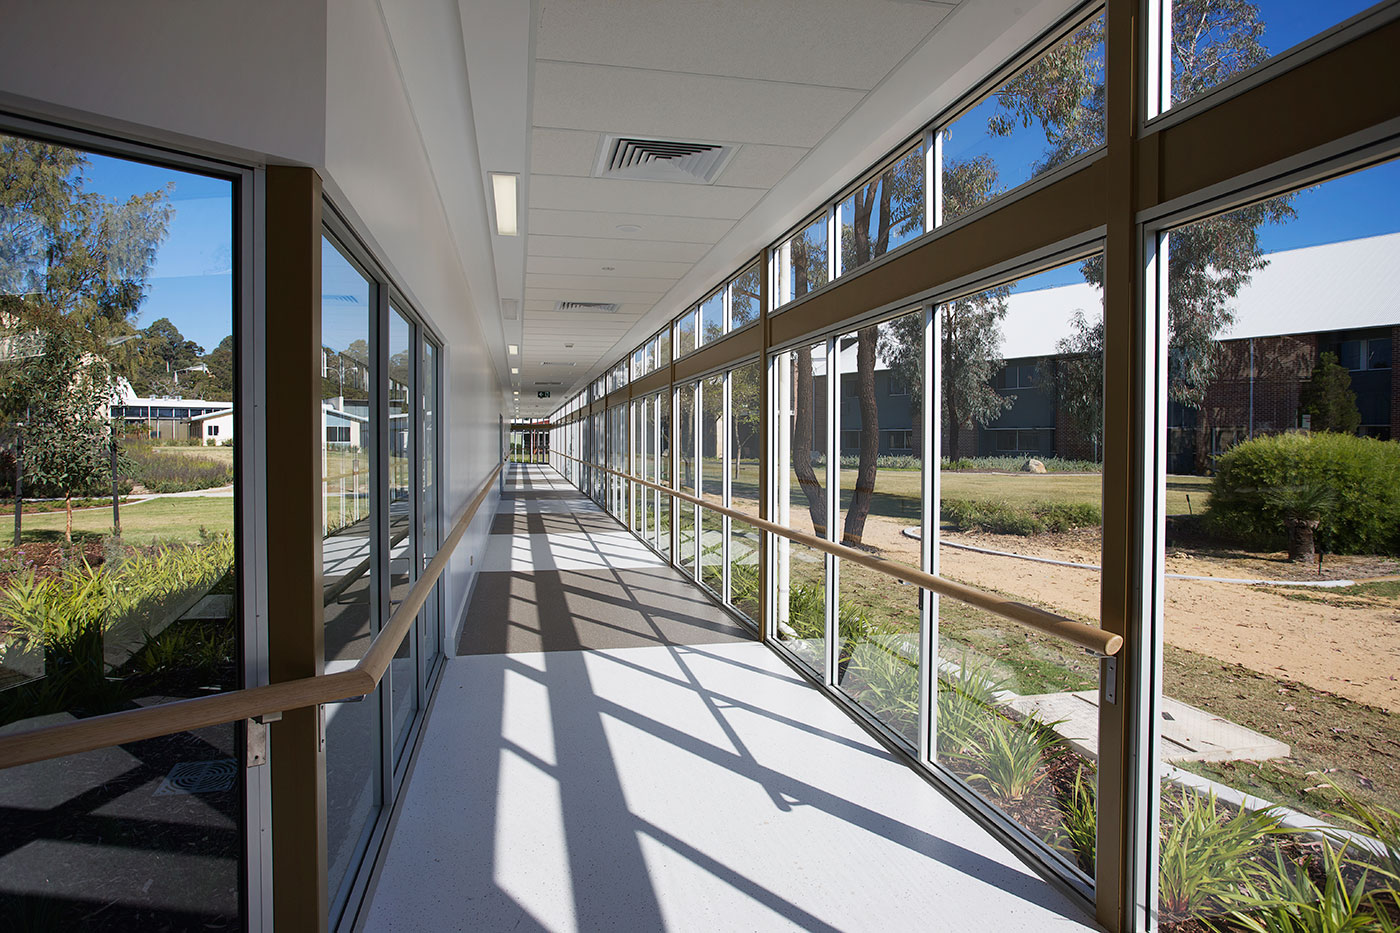 South West Health Campus : Image 2